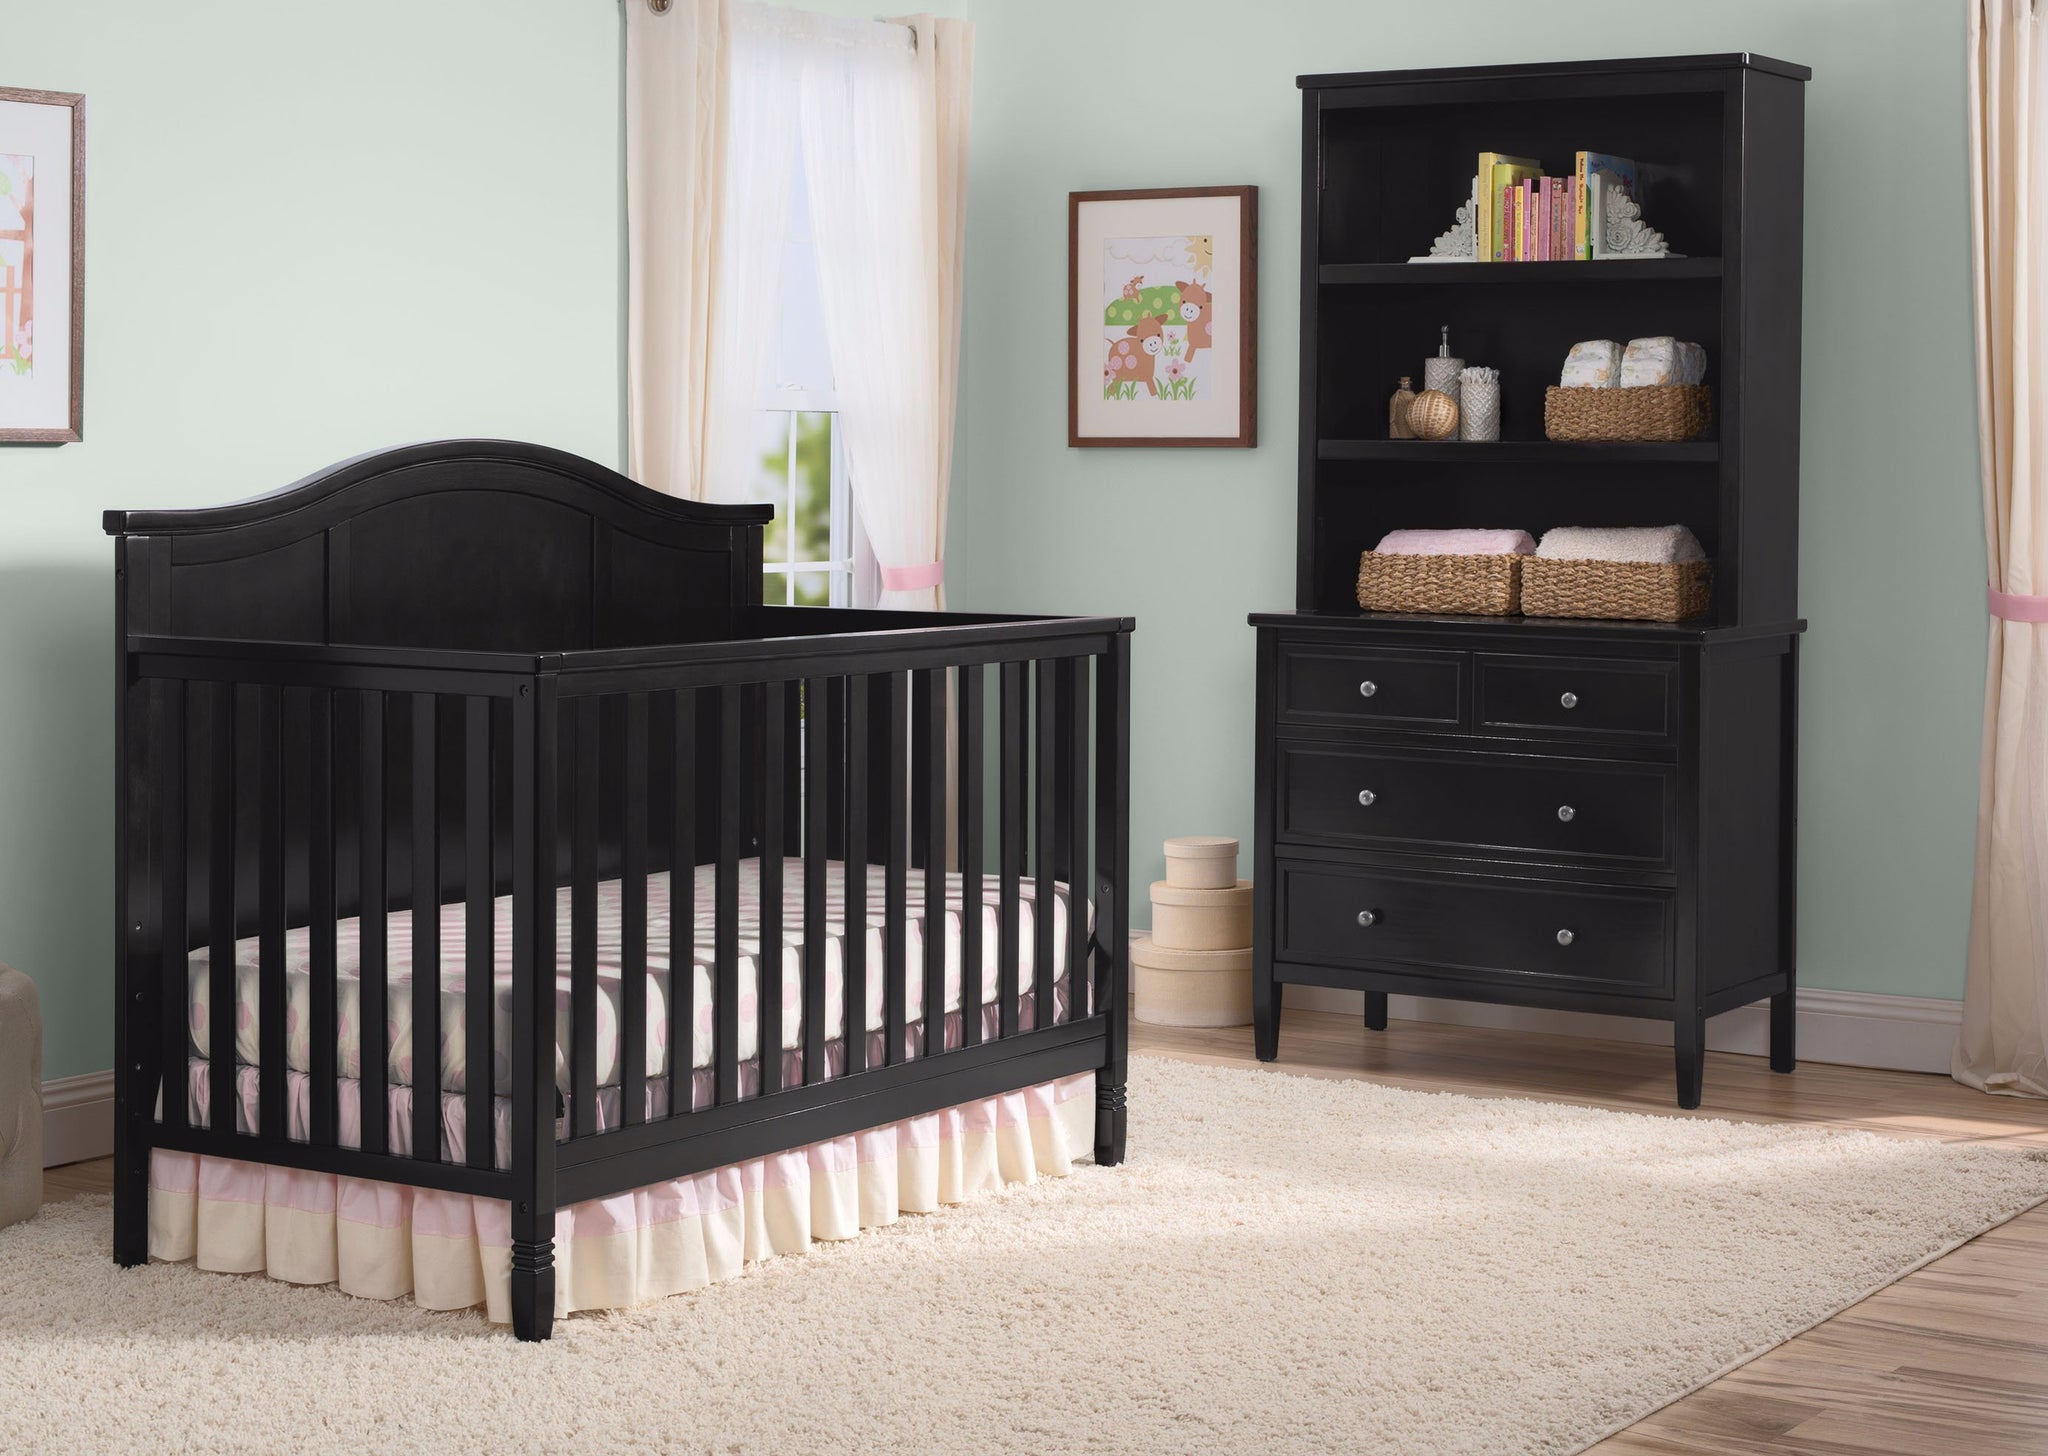 Madrid 4 in 1 Crib Black (001)